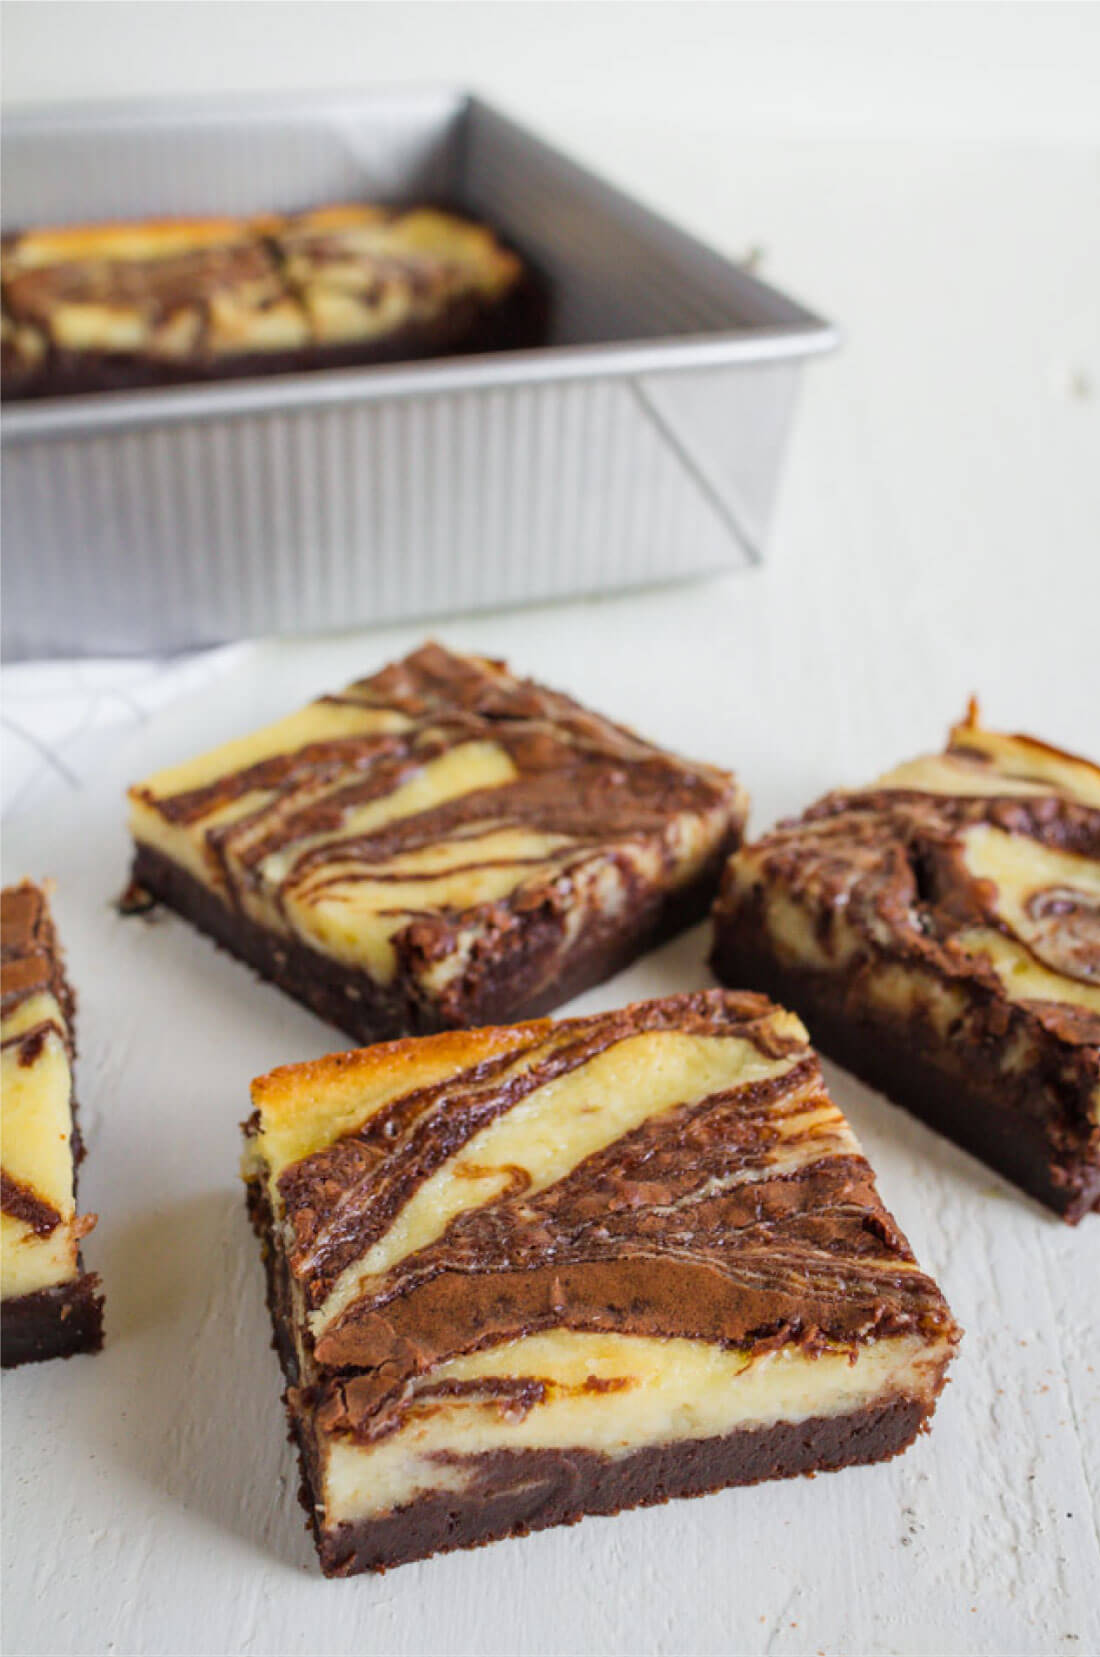 Cheesecake Brownies - they are delicious and simple and a fun take on regular brownies. Pan full of brownies and cut up.